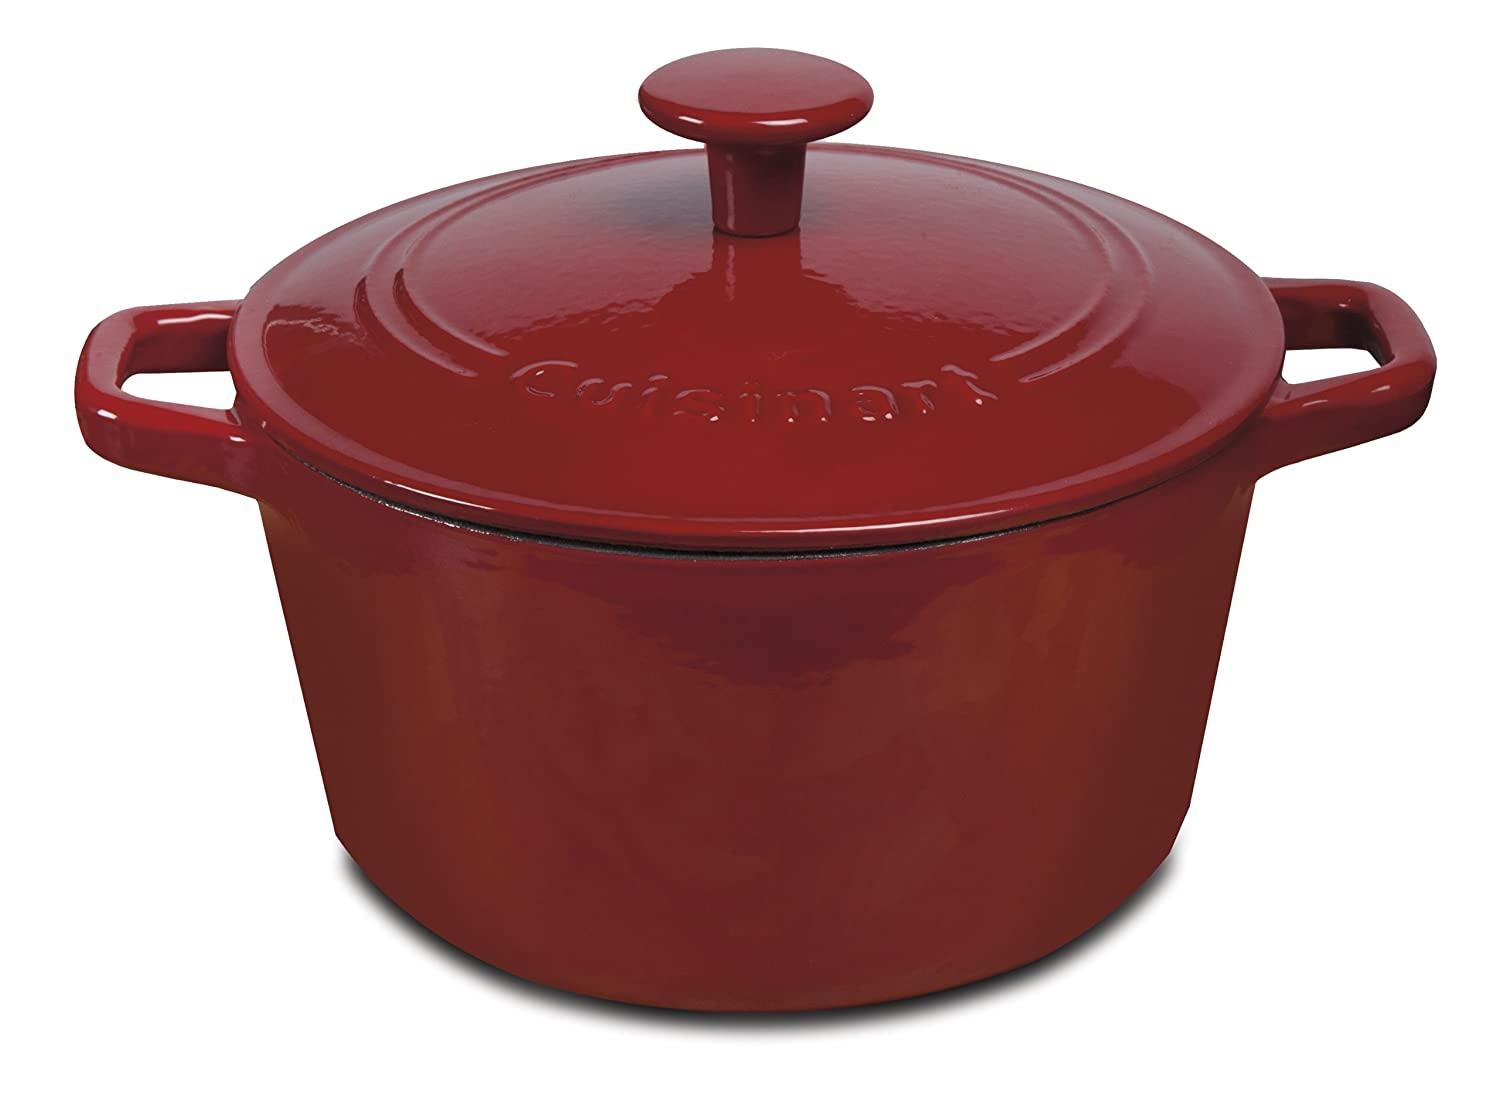 Cuisinart CI630-20CRC 3-Quart Round Covered Casserole, Red